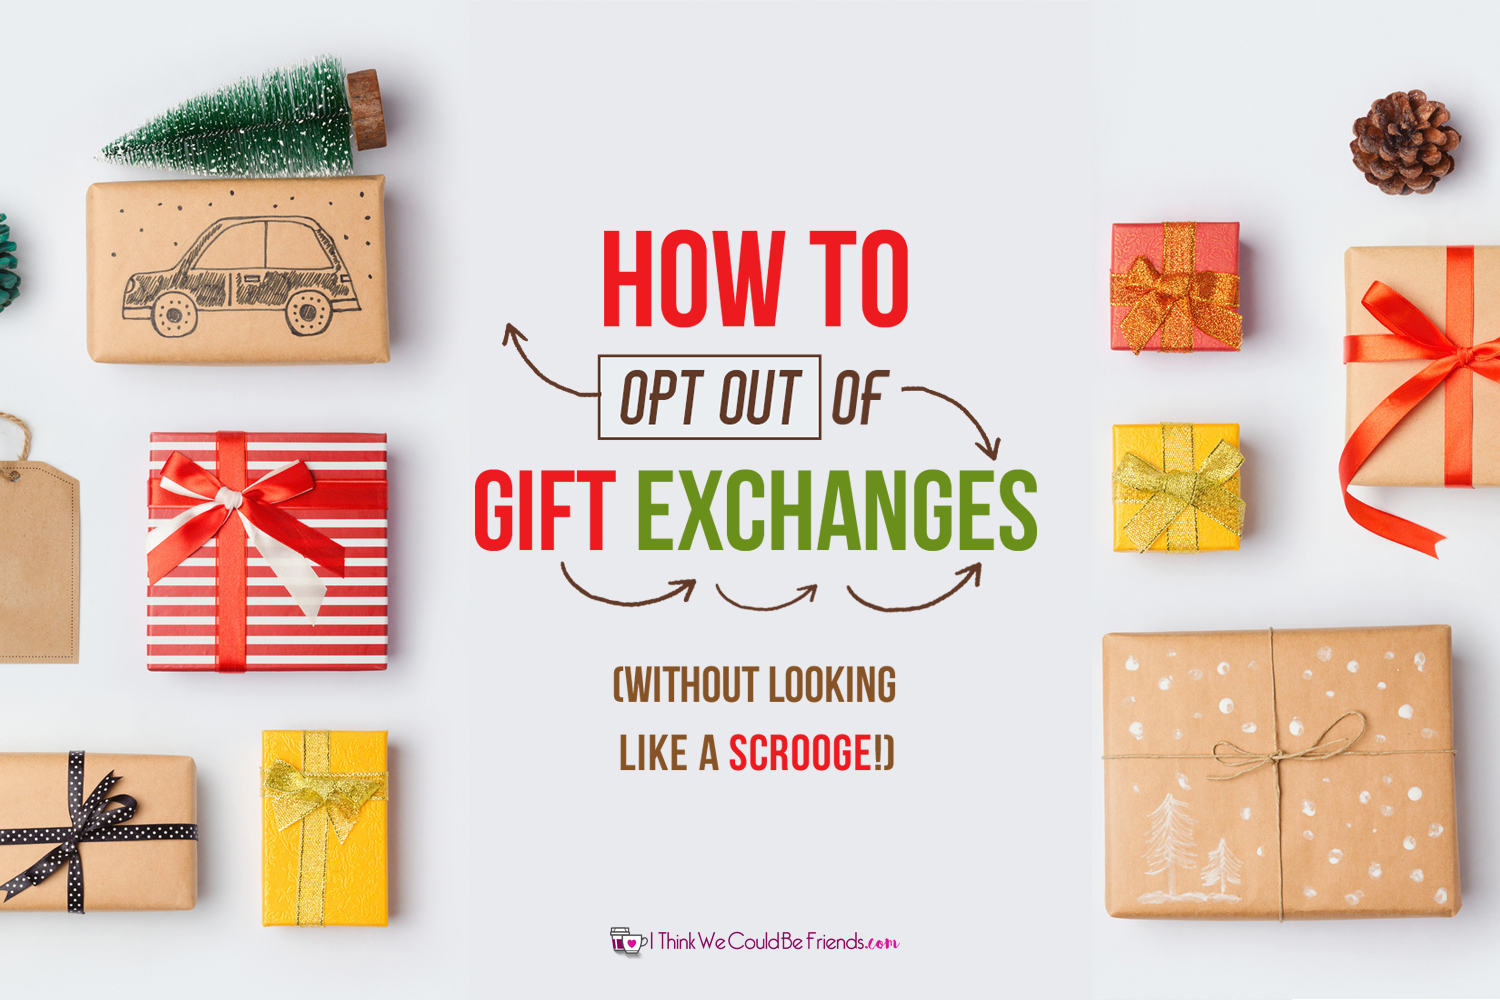 great advice on how to opt out of gift exchanges at work with friends or